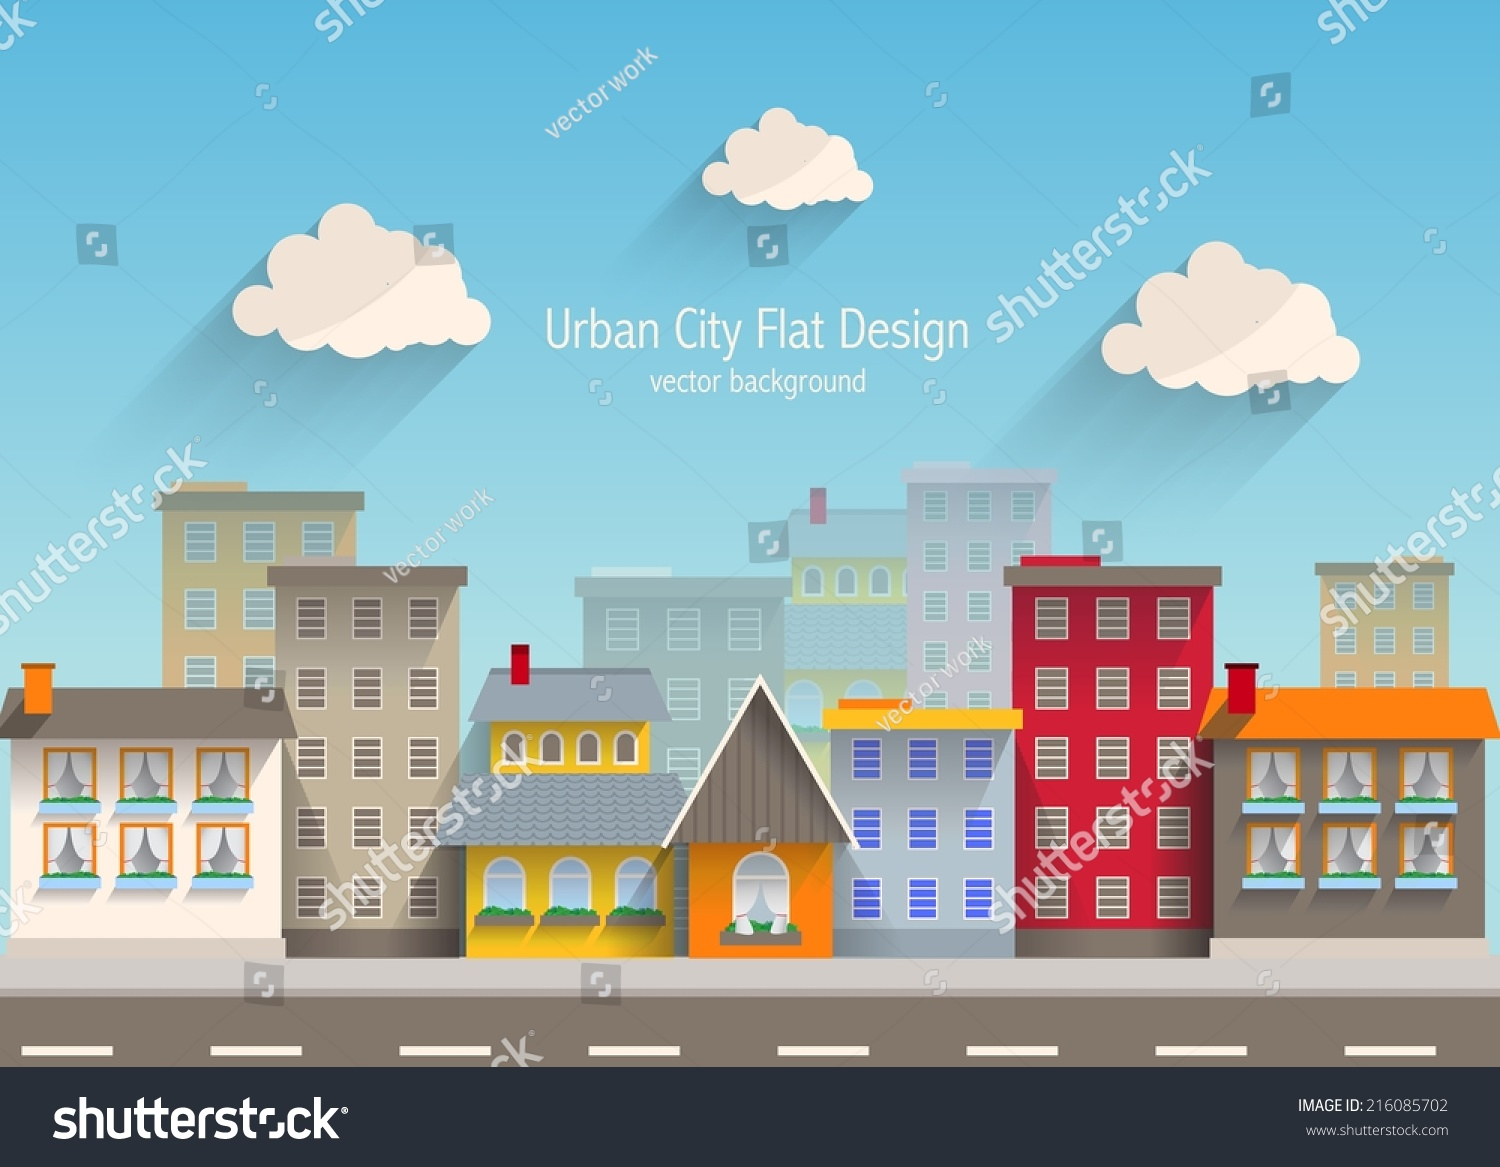 Urban city flat design stock vector illustration for Flat design pictures